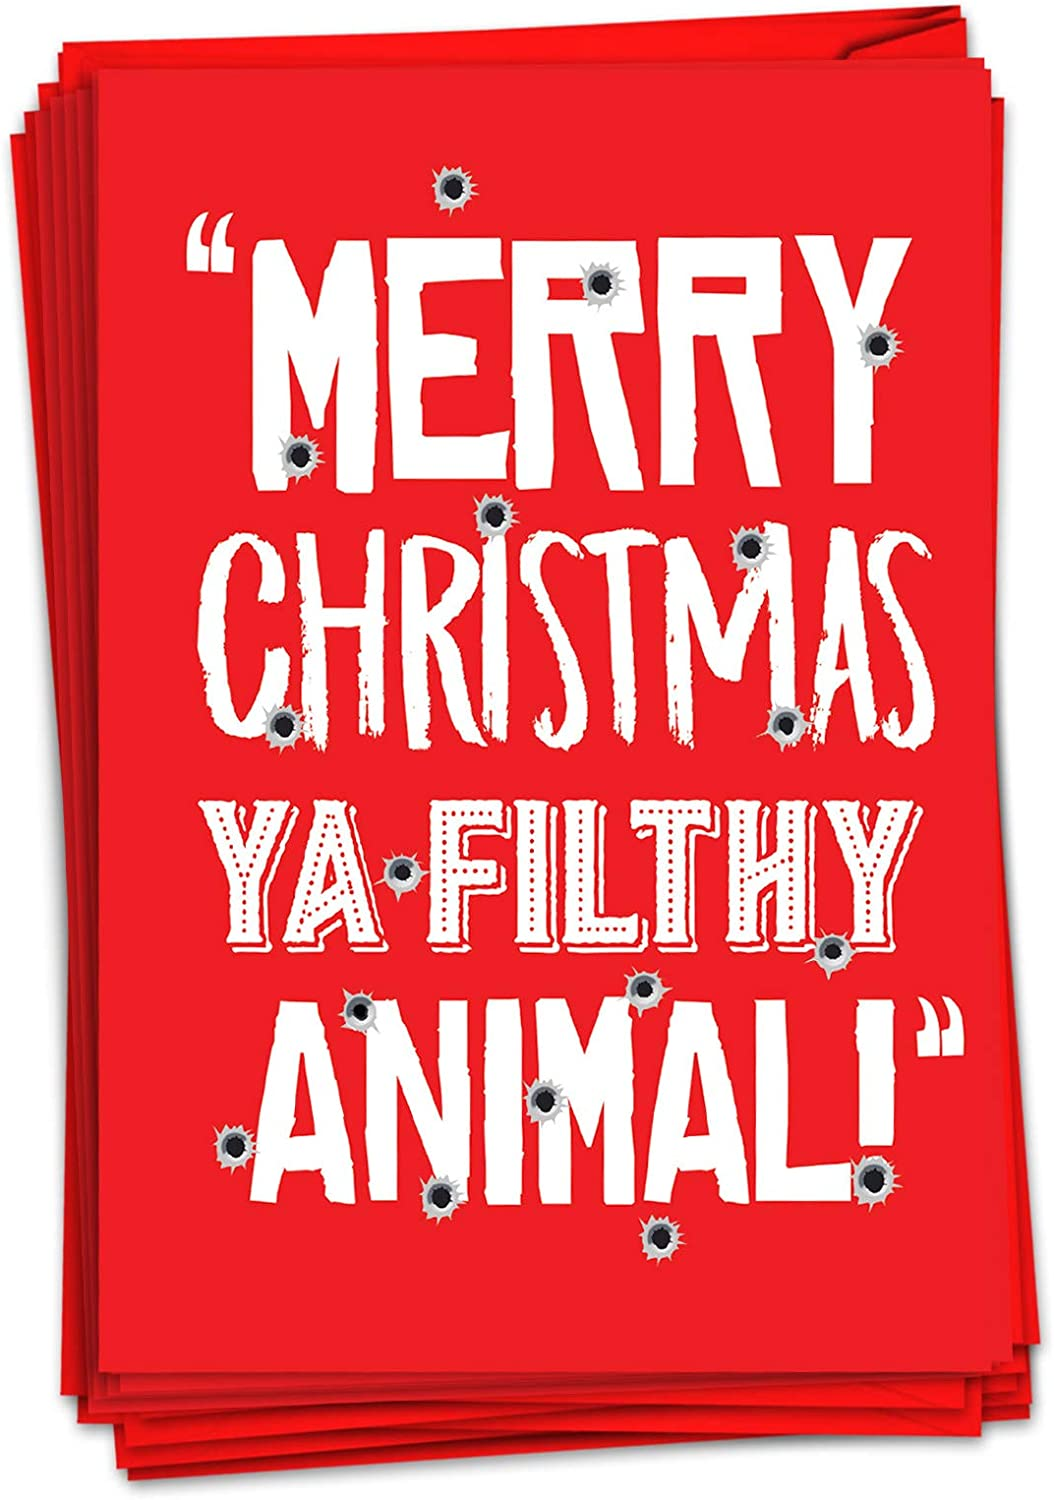 NobleWorks - 12 Funny Christmas Greeting Cards - Inappropriate Boxed Xmas Holiday Cards, Adult Humor with Envelopes (1 Design, 12 Cards) - Filthy Animal C7067XSG-B12x1